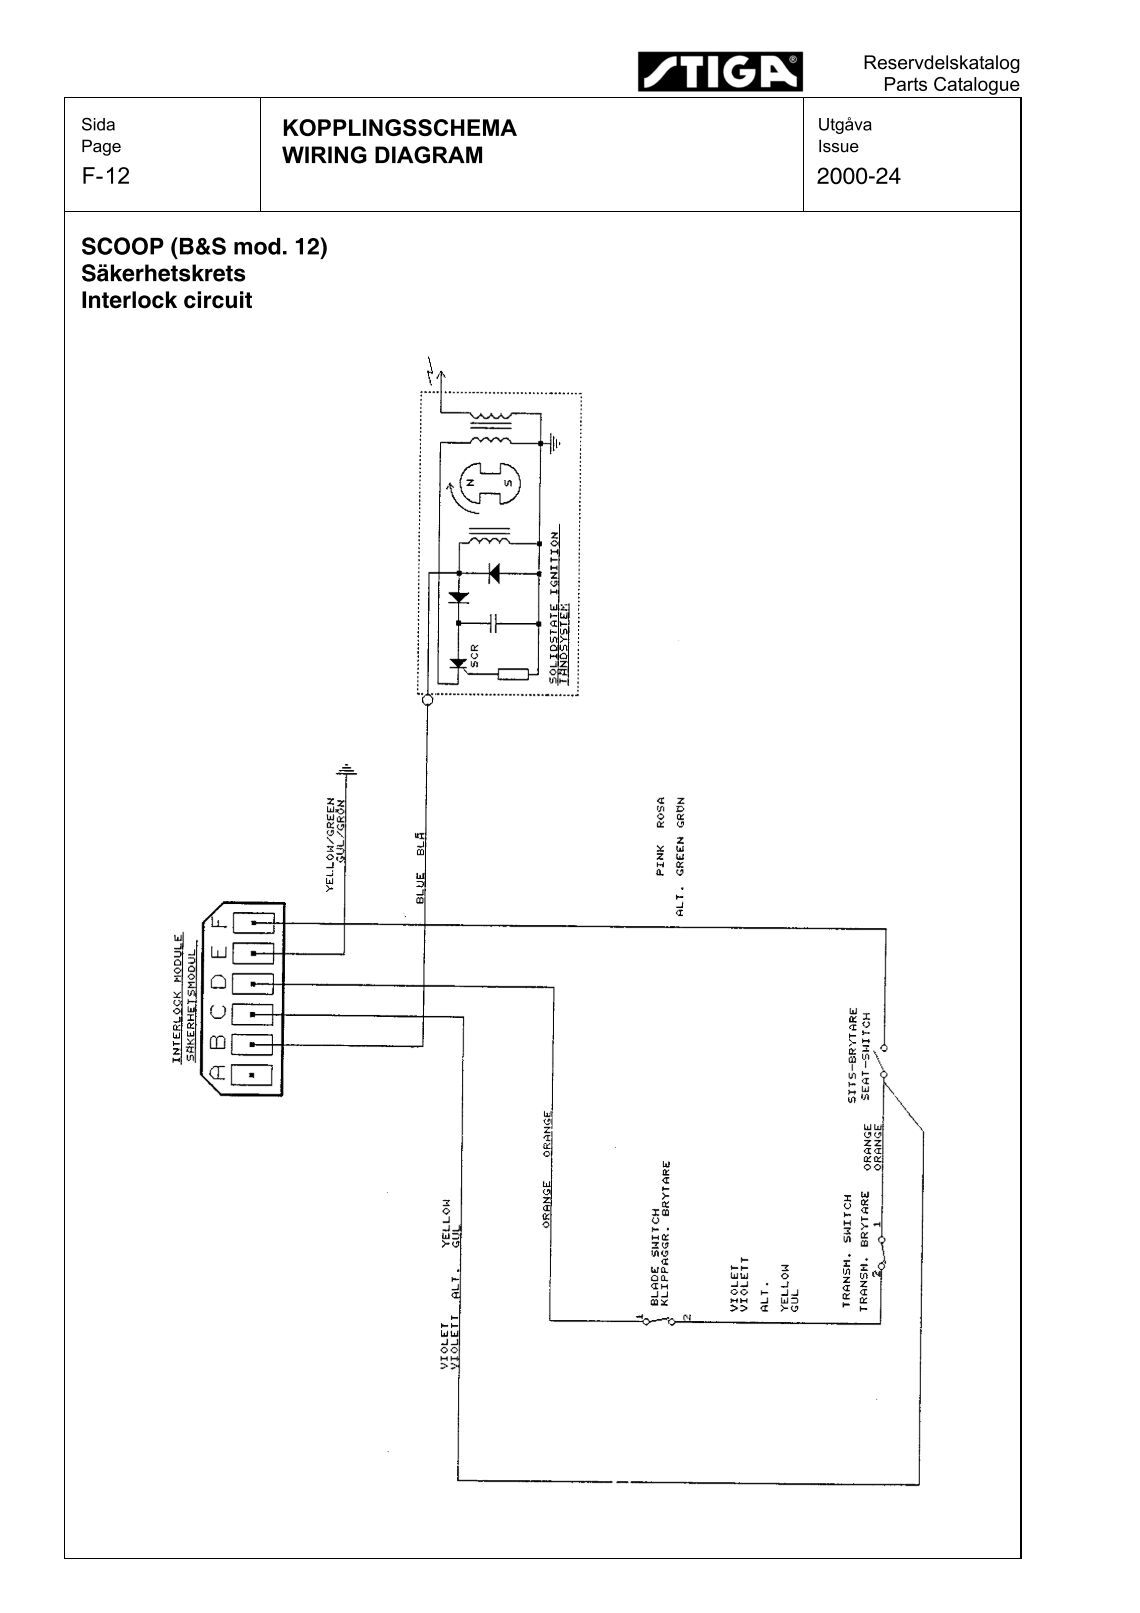 Kubota Rtv X1100c Wiring Diagram Download Diagrams Radio 1140 Tractor Imageresizertool Com X1100